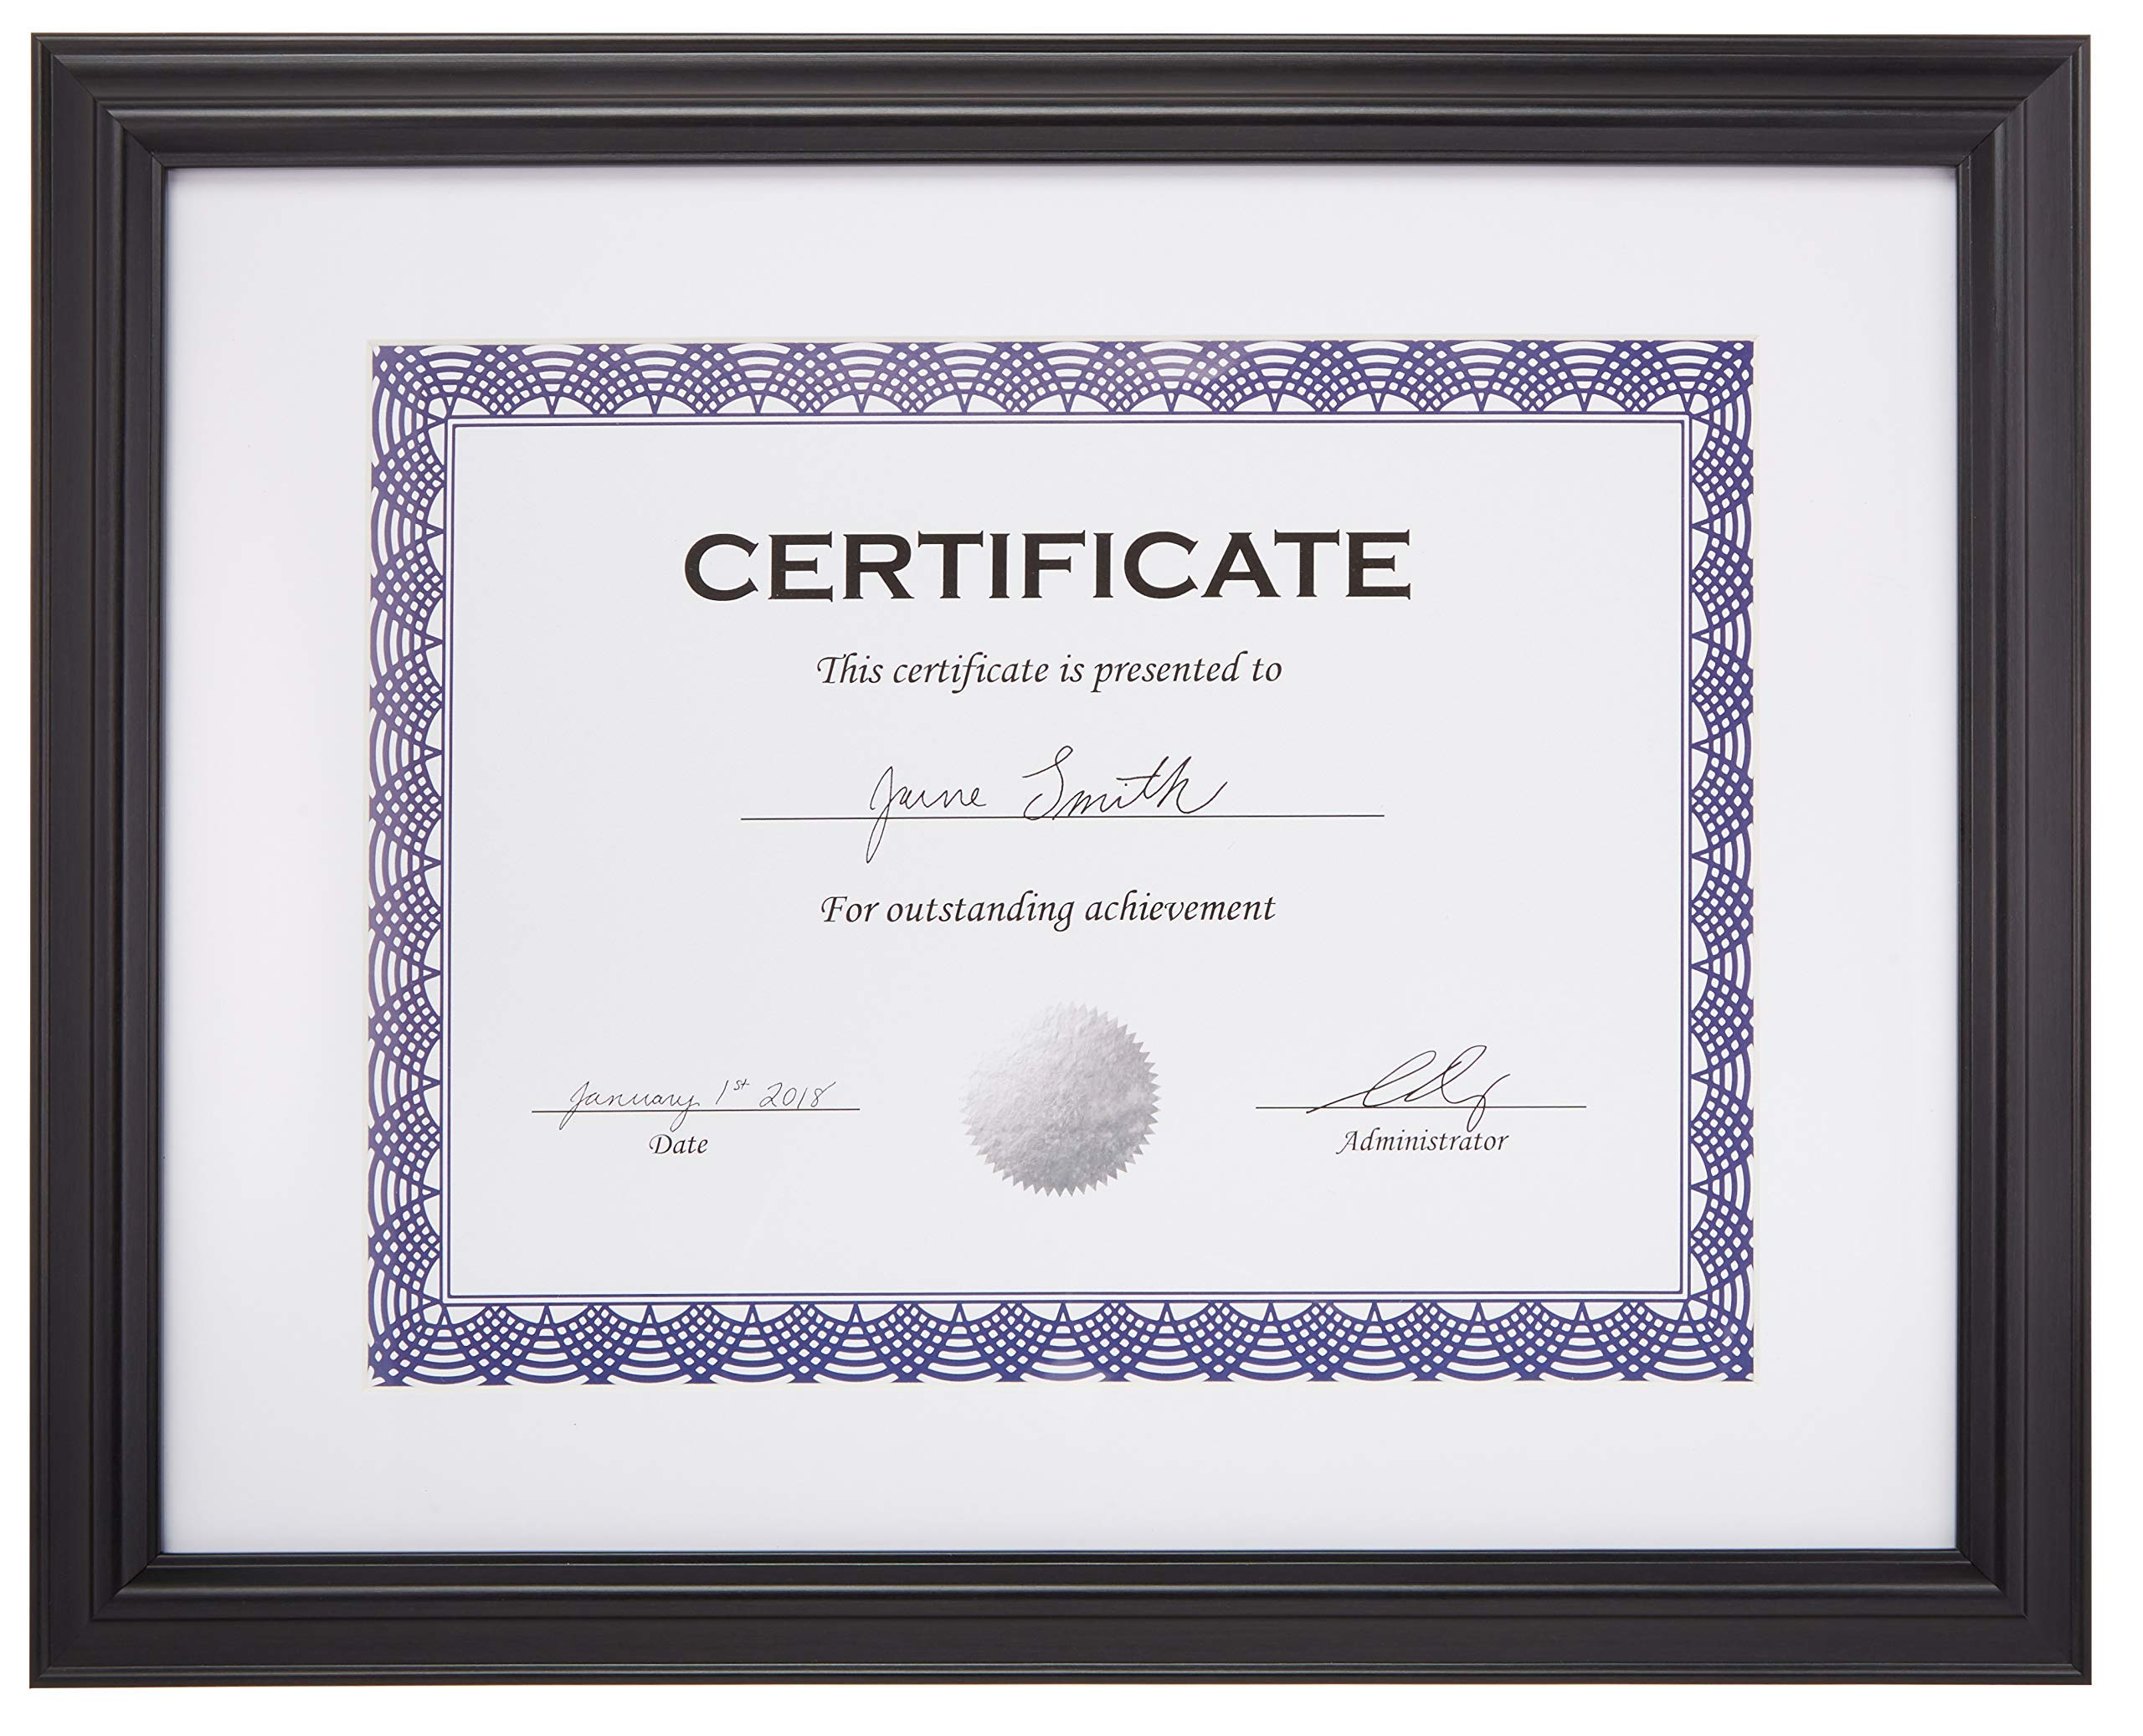 AmazonBasics Certificate Document Frame With Mat, 8.5'' x 11'', Black, 2-Pack